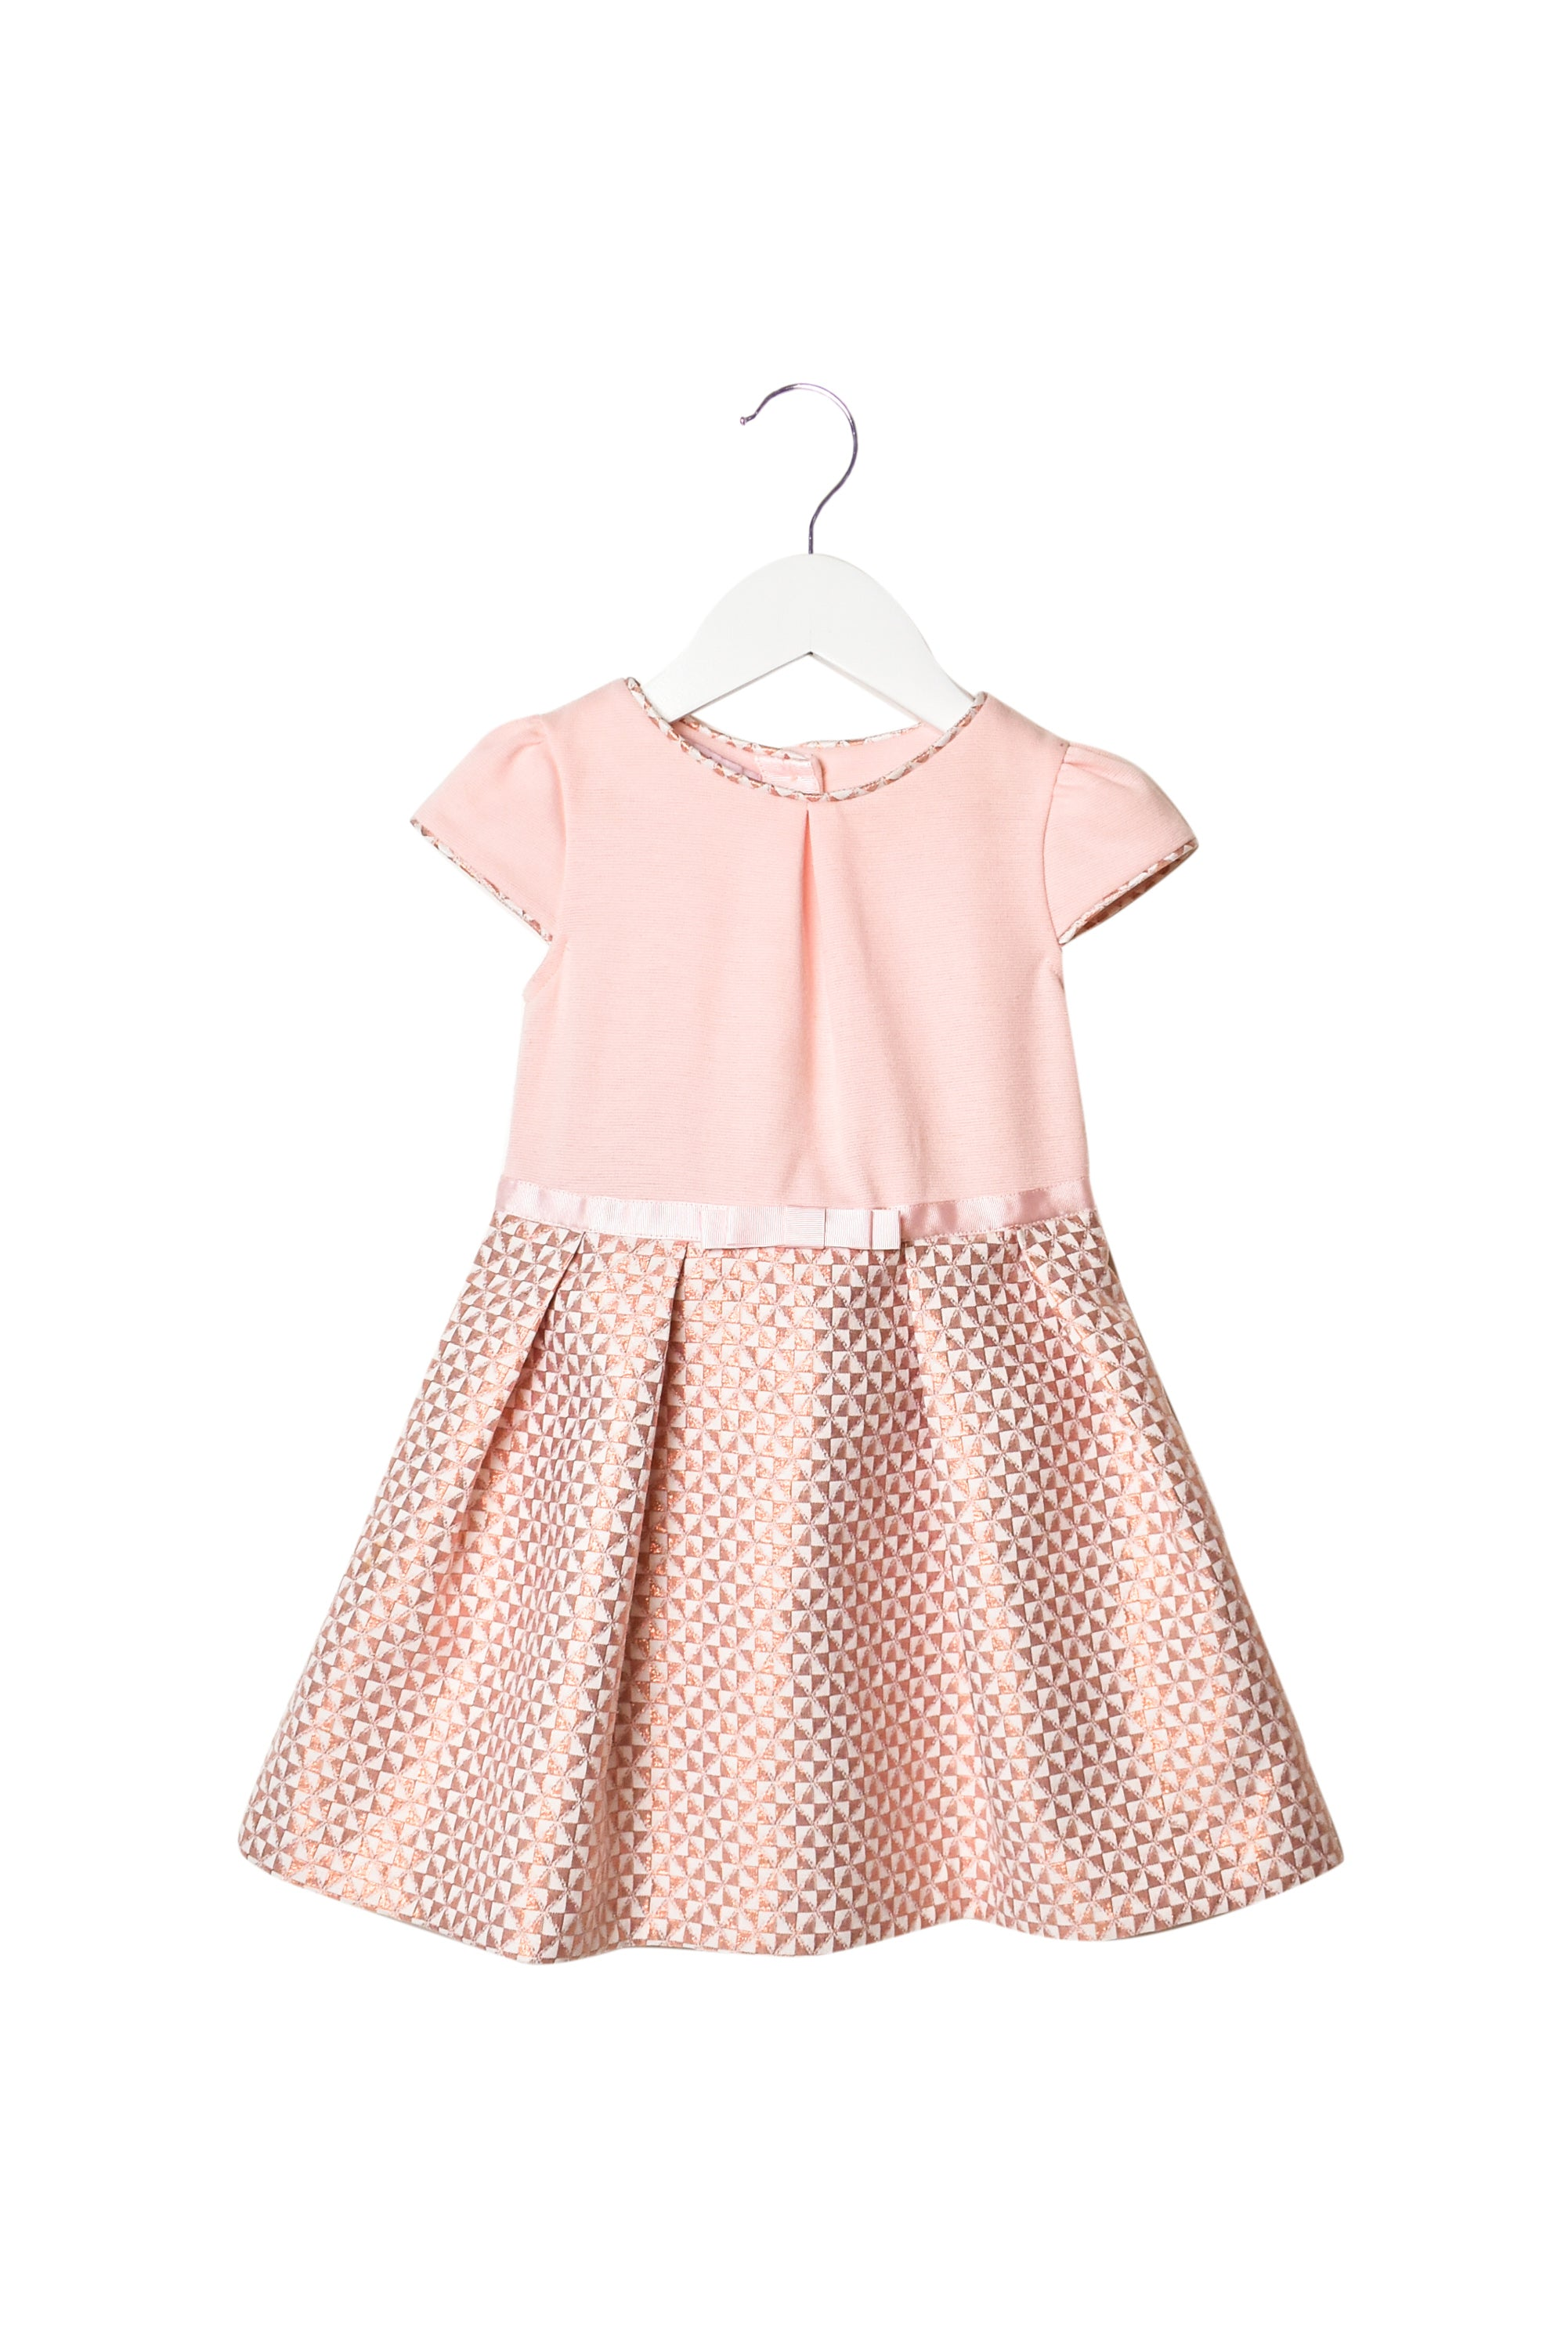 89f28d1a94243 10009719 Baker by Ted Baker Kids~Dress 2-3T at Retykle